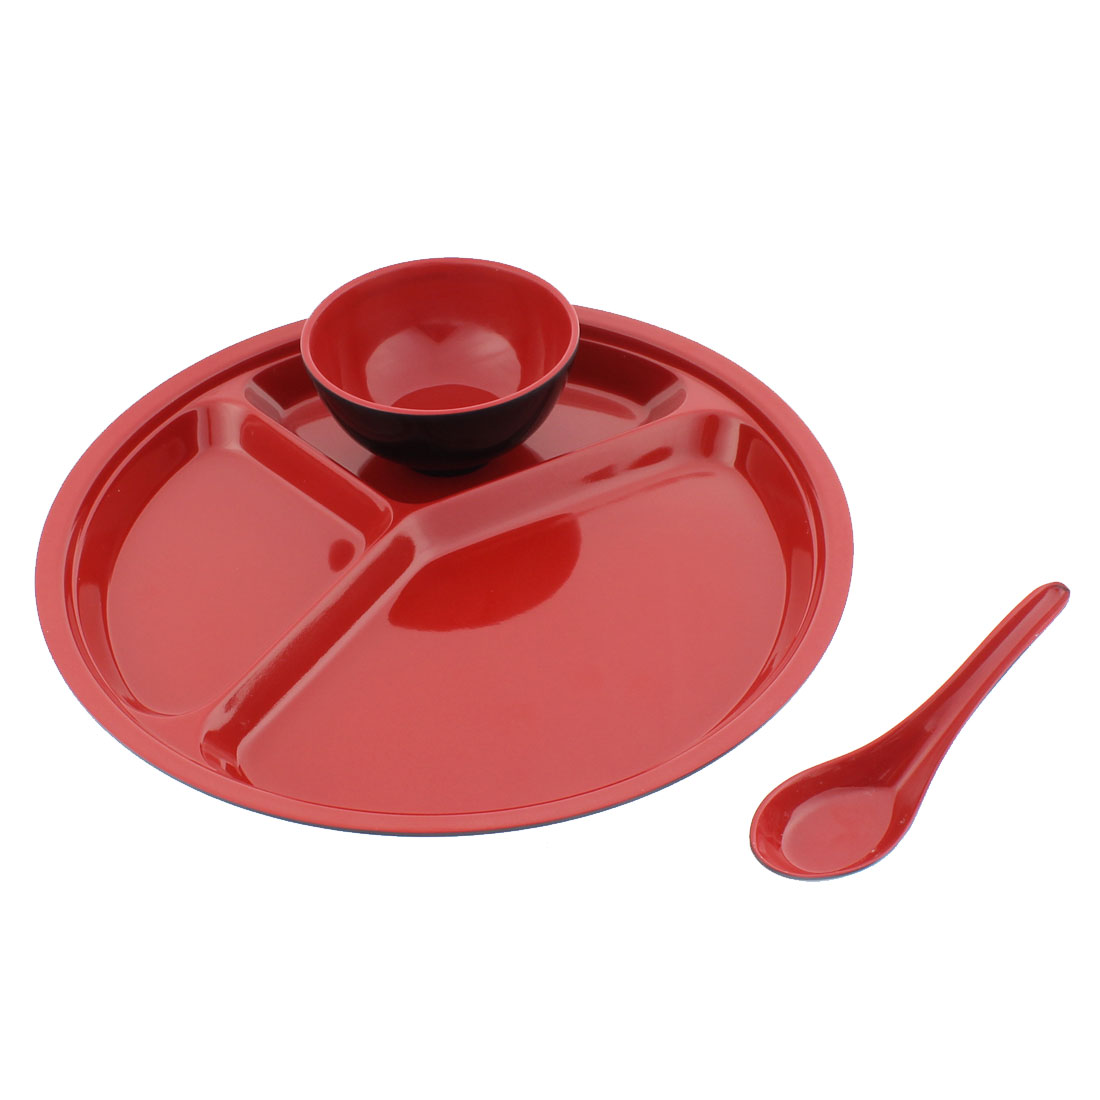 School Restaurant Plastic 3 Compartments Divided Plate Tray Bowl Spoon 3 in 1